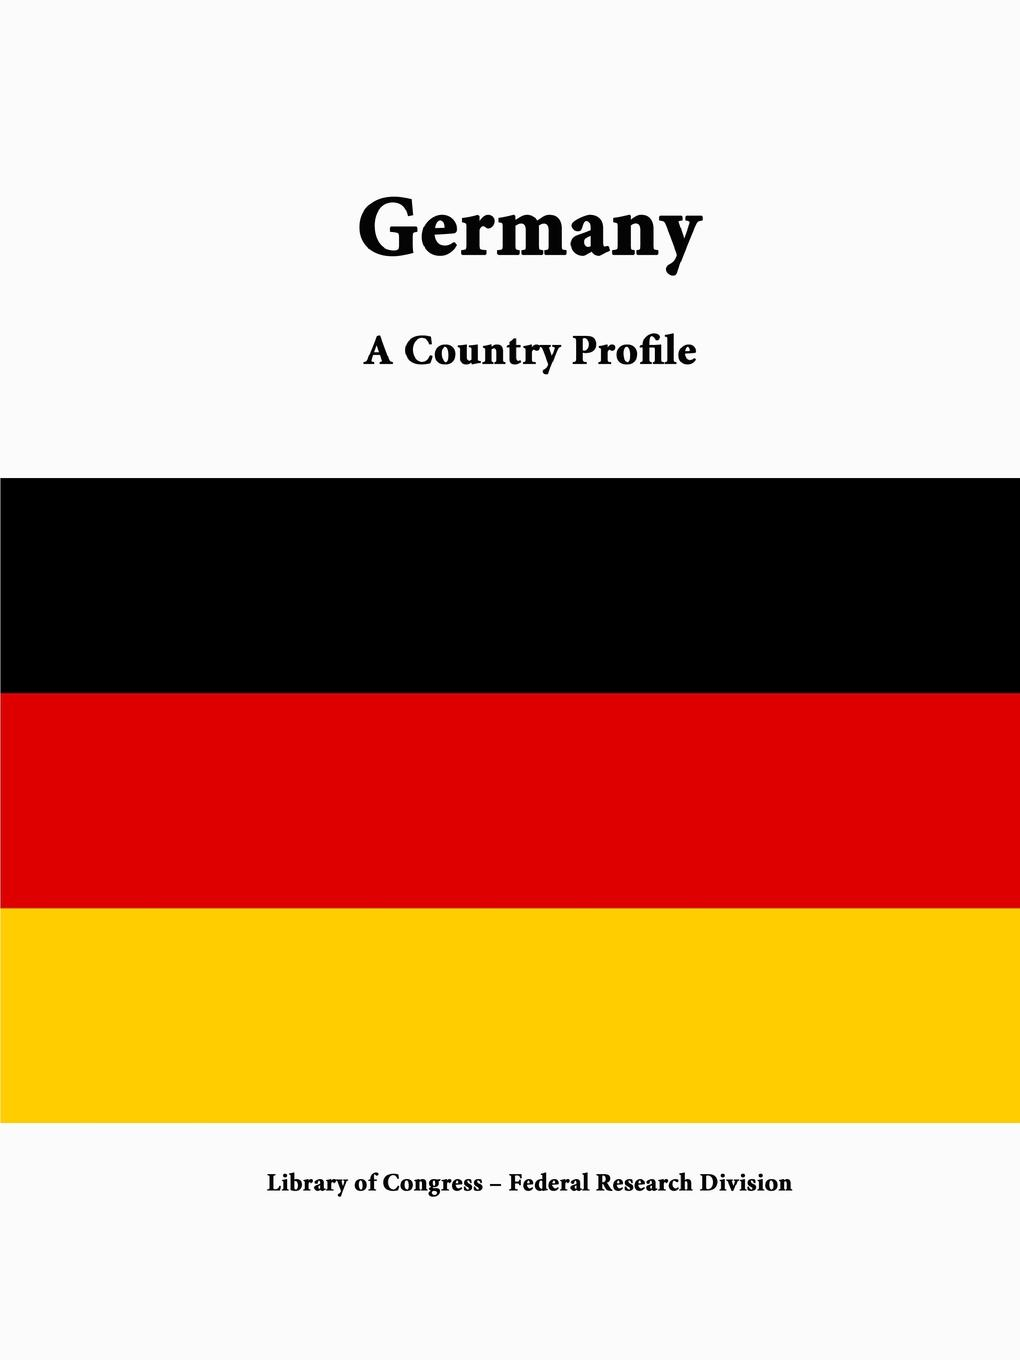 Library of Congress, Federal Research Division Germany. A Country Profile